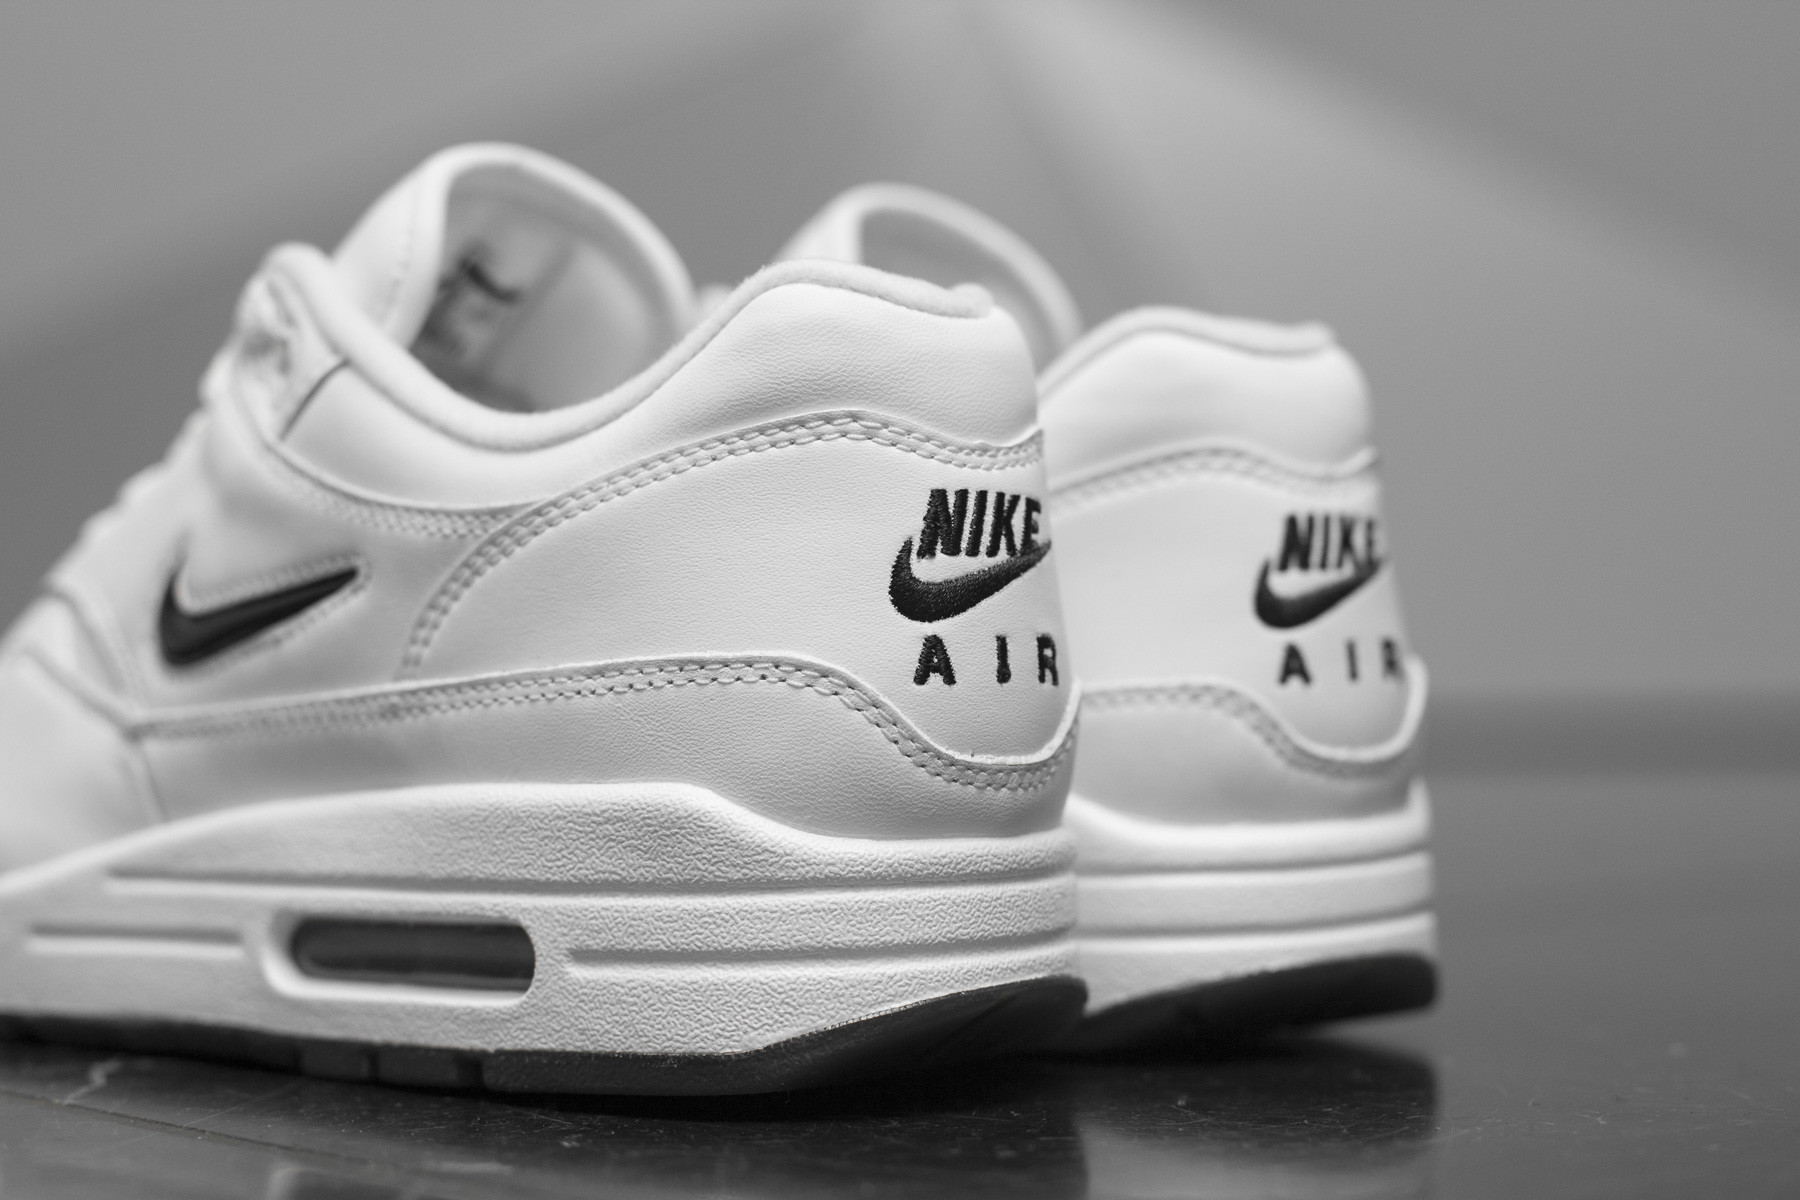 nike air max 1 prem jewel sneakers. Black Bedroom Furniture Sets. Home Design Ideas